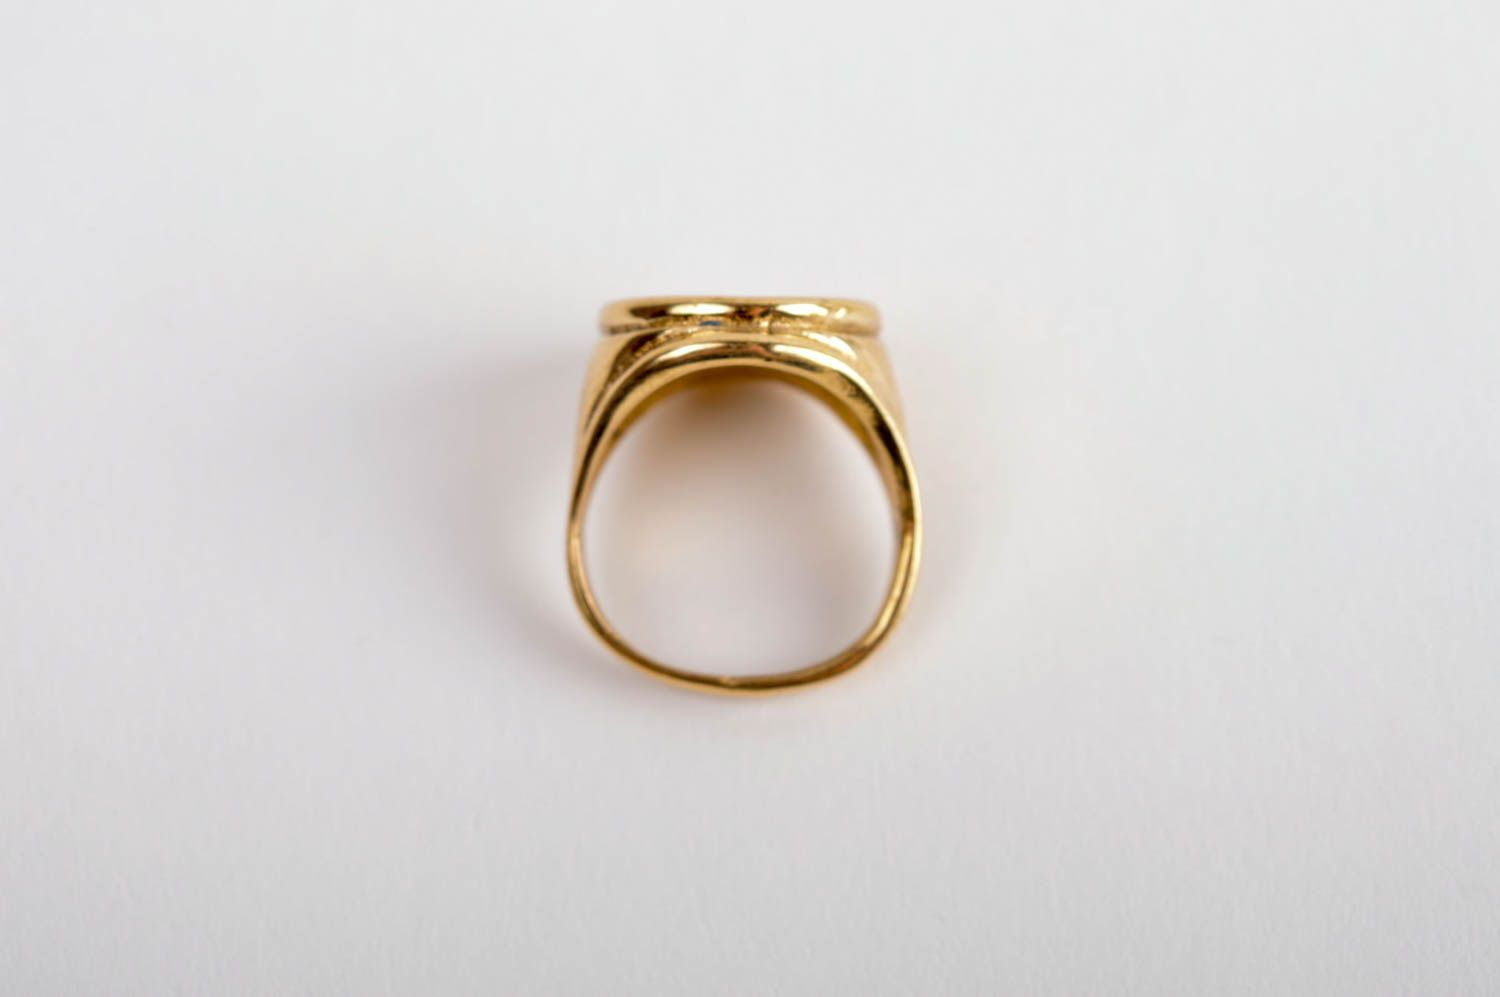 Stylish beautiful ring handmade brass ring metal accessory unisex ring photo 5